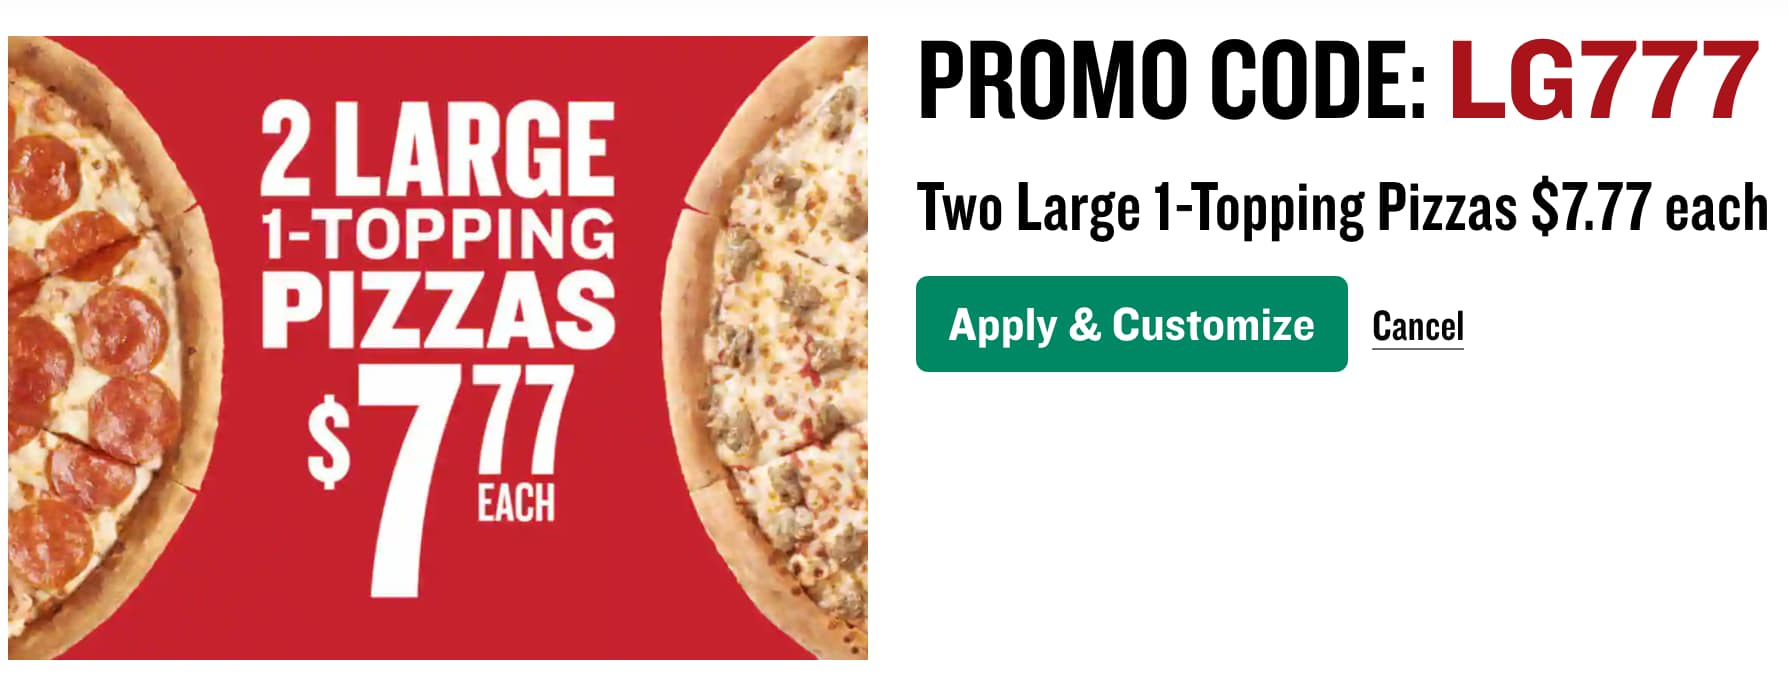 Papa Johns: Get 2 Large 1-topping pizzas for $7.77 each using code LG777 good thru 7/29 07-06-2018